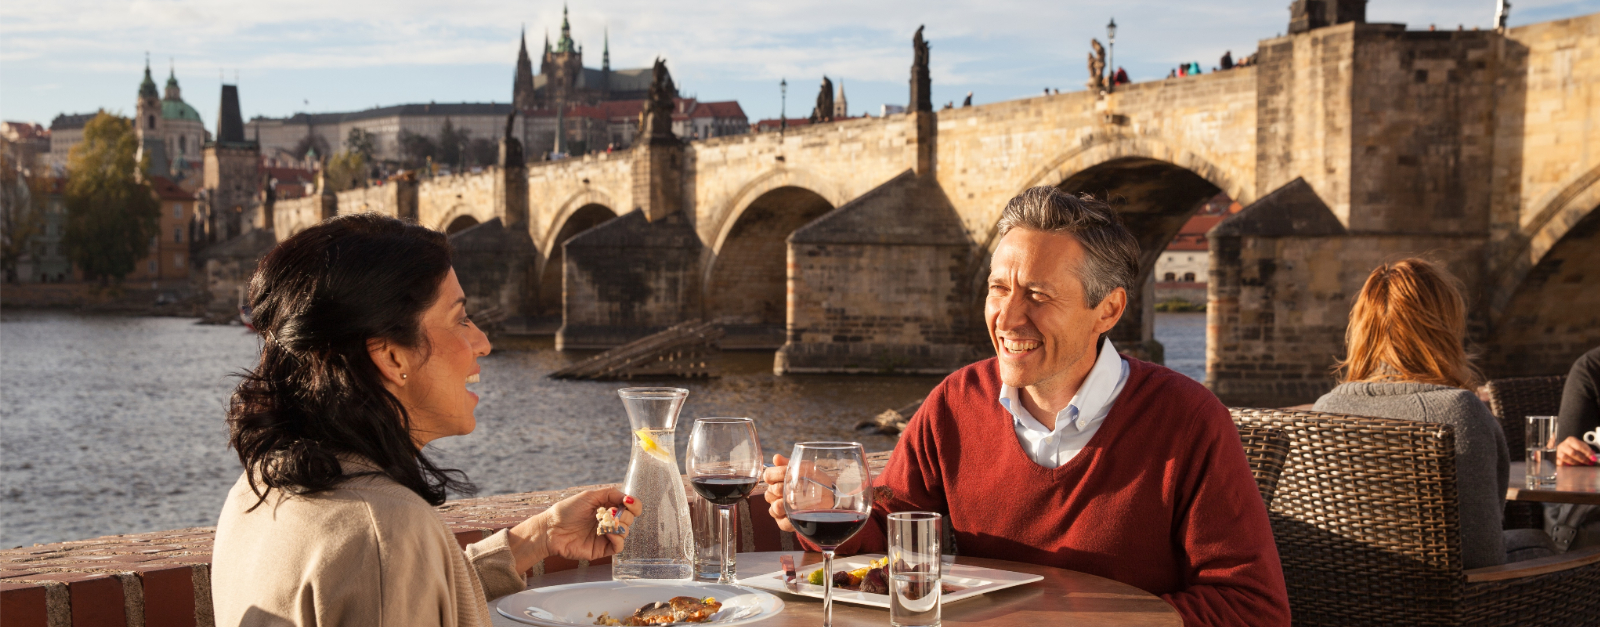 History, culture and picturesque towns: The best experiences for silver travellers in the Czech Republic